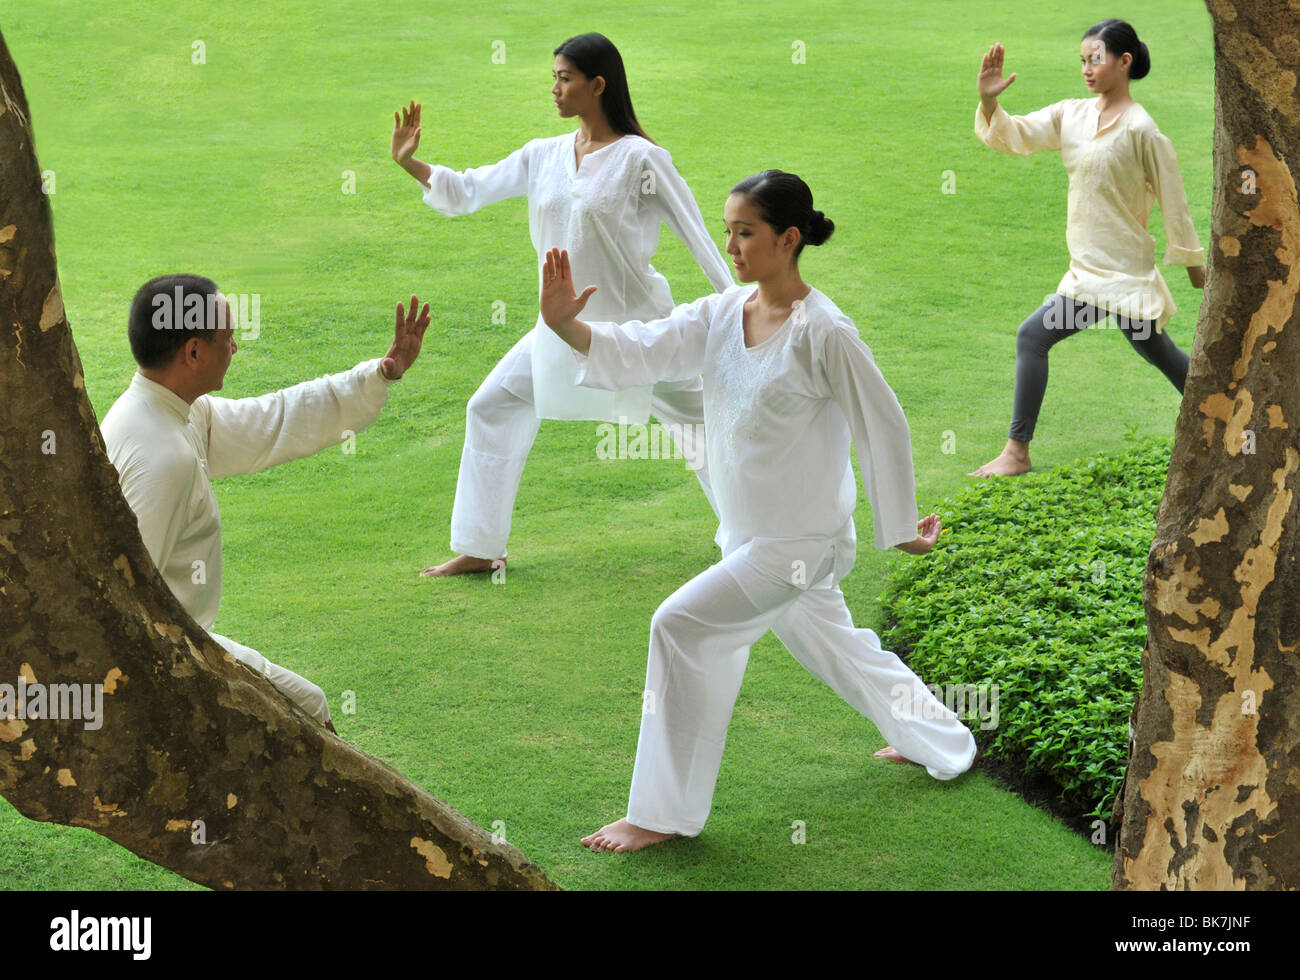 A group of people doing Tai Chi outdoors - Stock Image